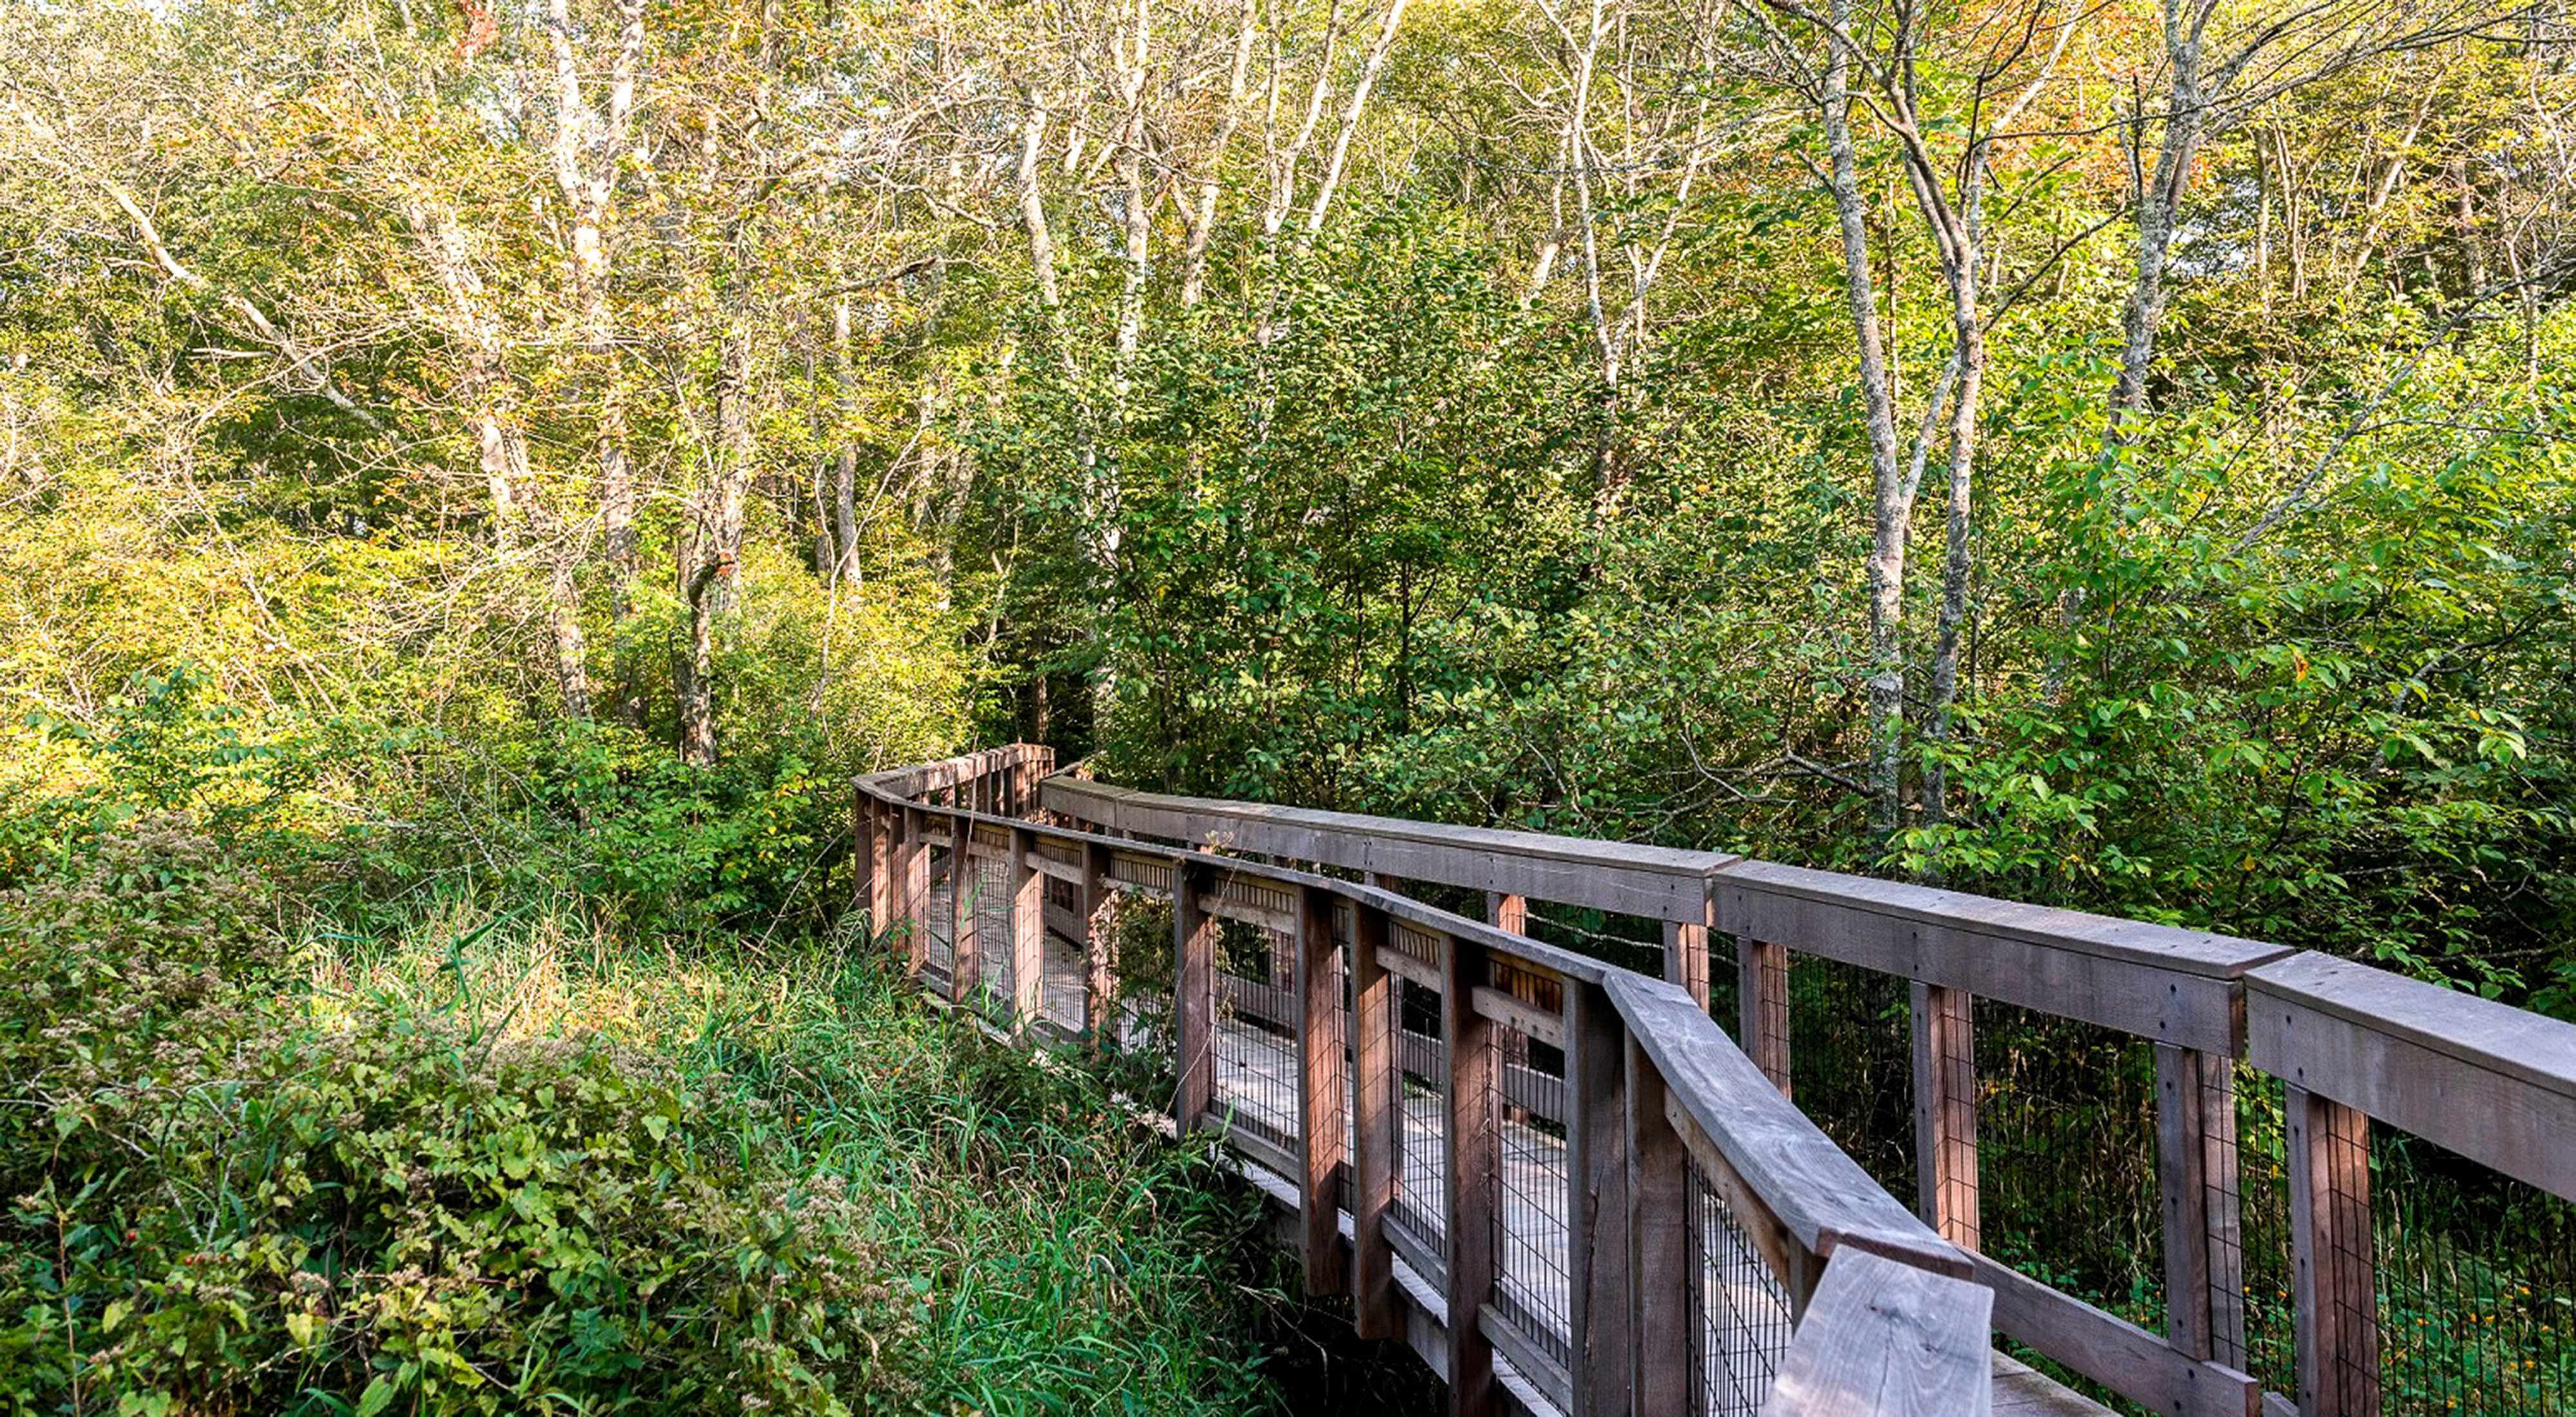 Dundery Brook trail Boardwalk